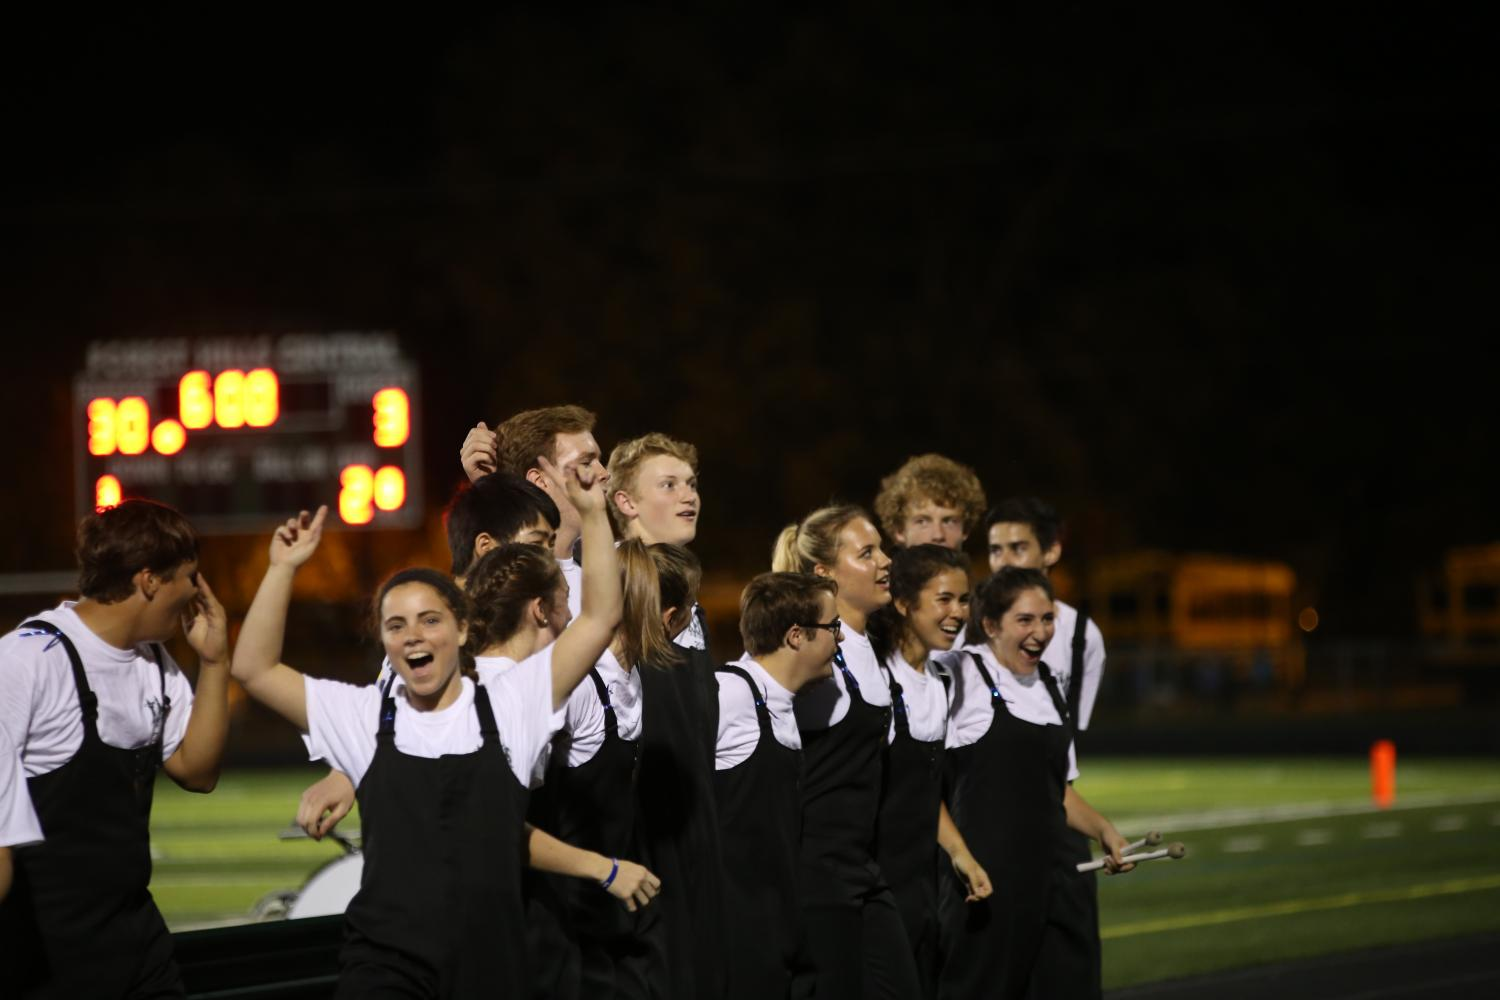 FHC band continues to succeed under new band director